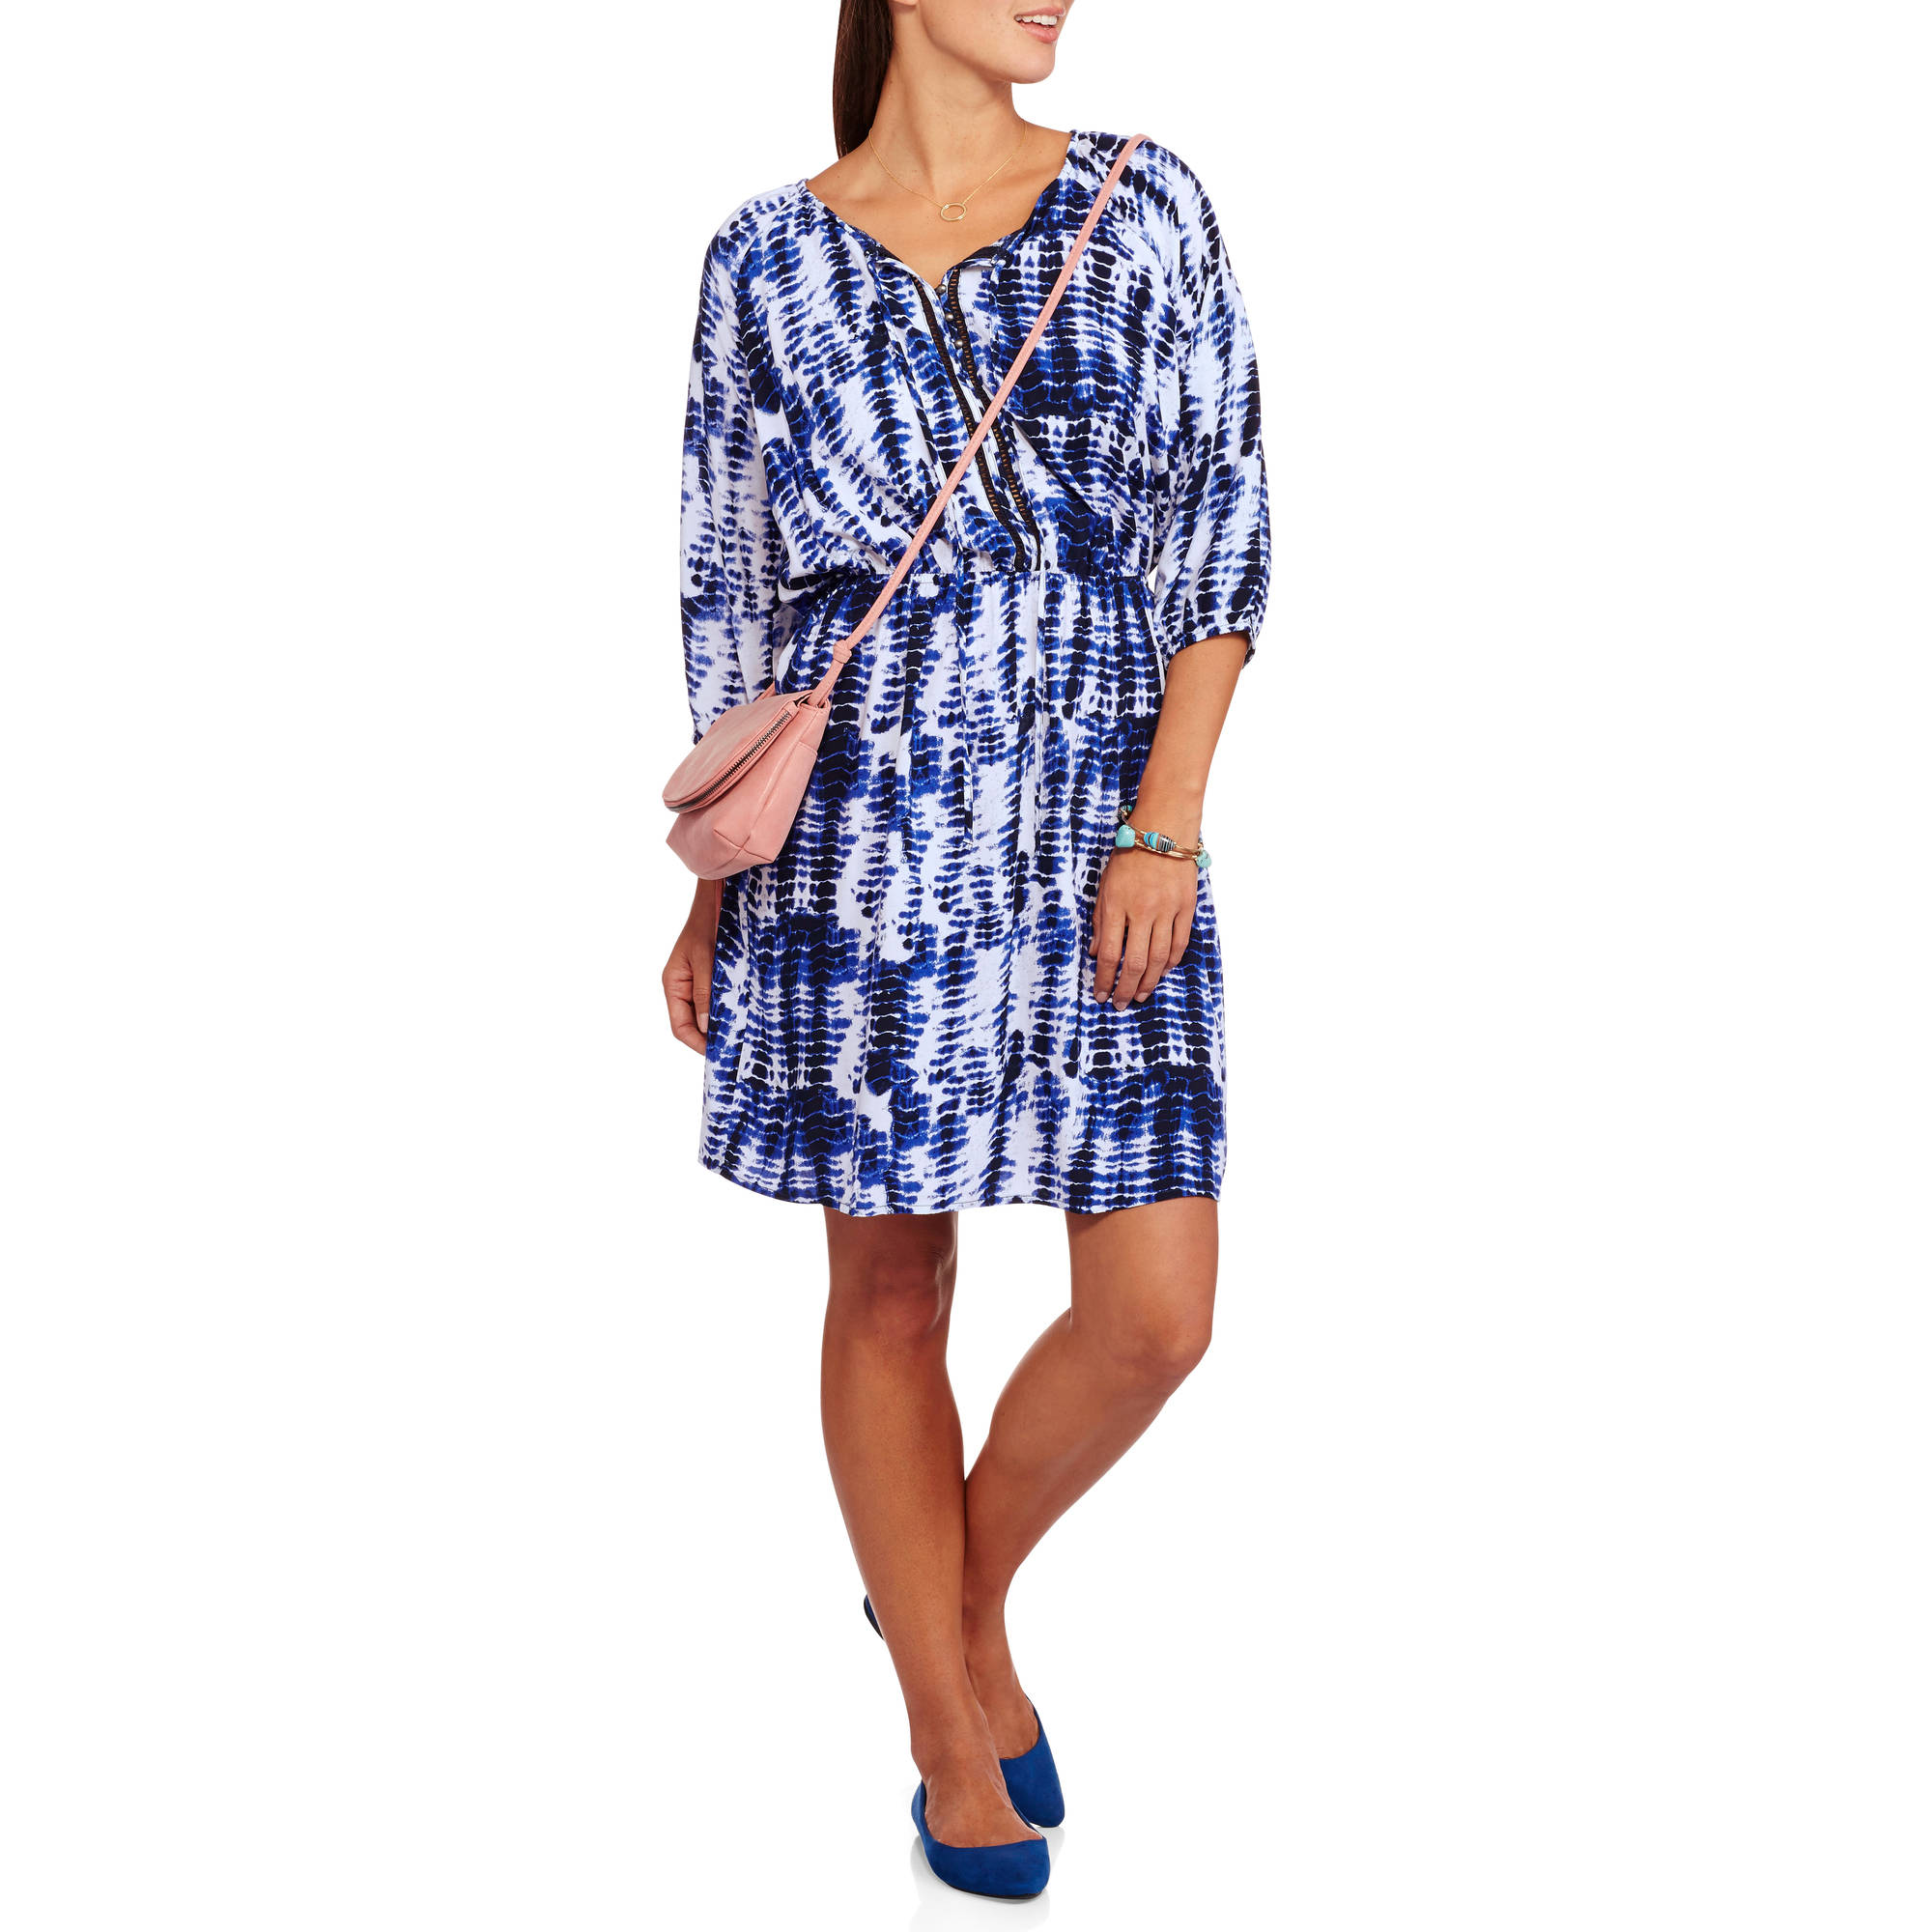 Ocean Pacific Women's Raglan Sleeve Peasant Dress with Lace up Front